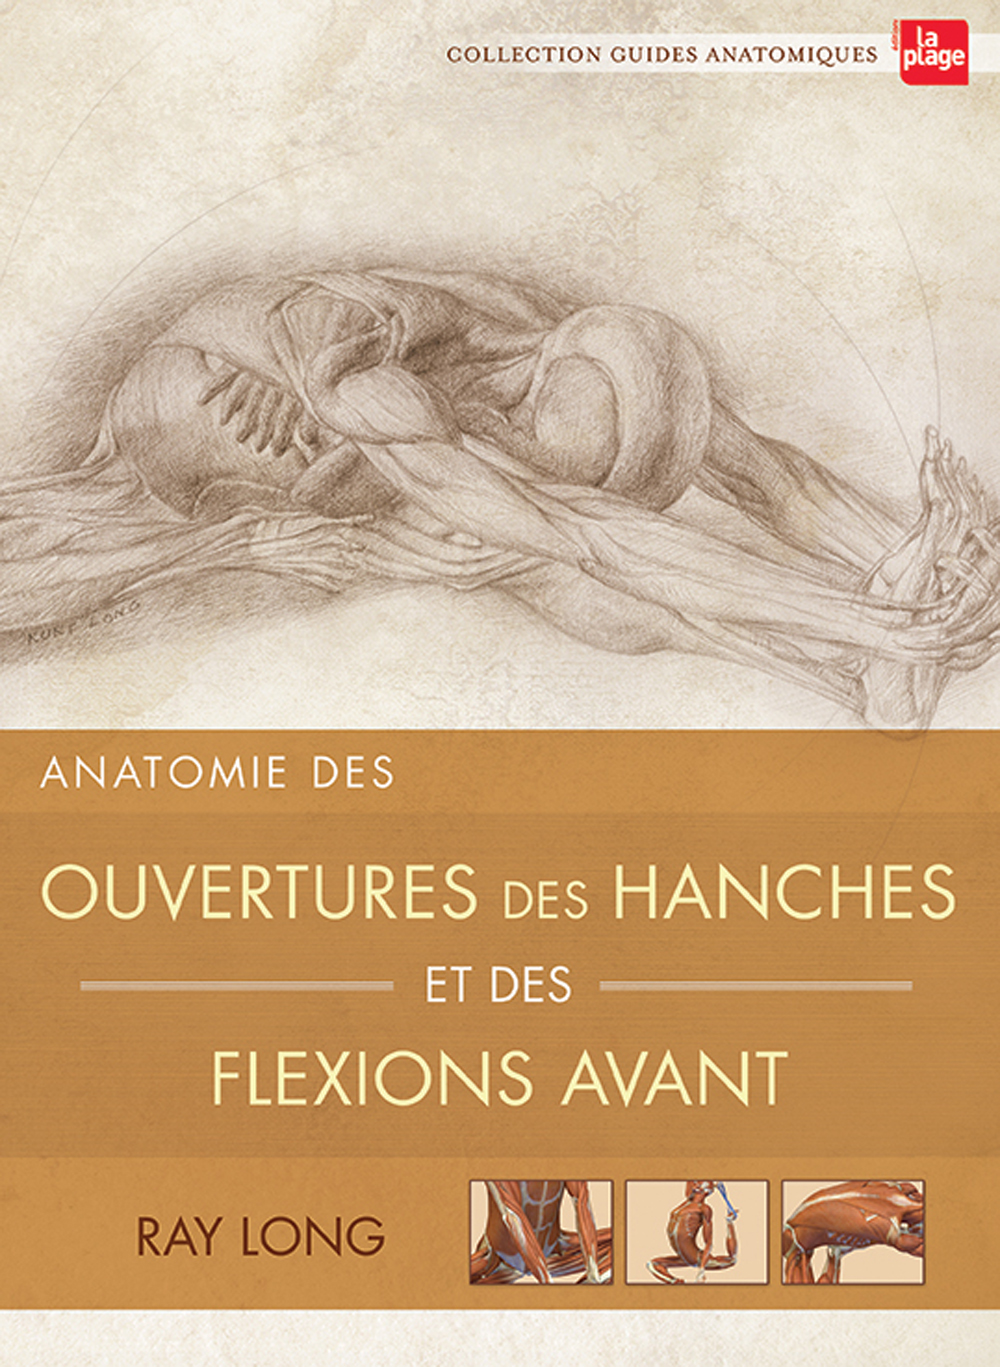 anatomie-ouverture-des-hanches-ray-long